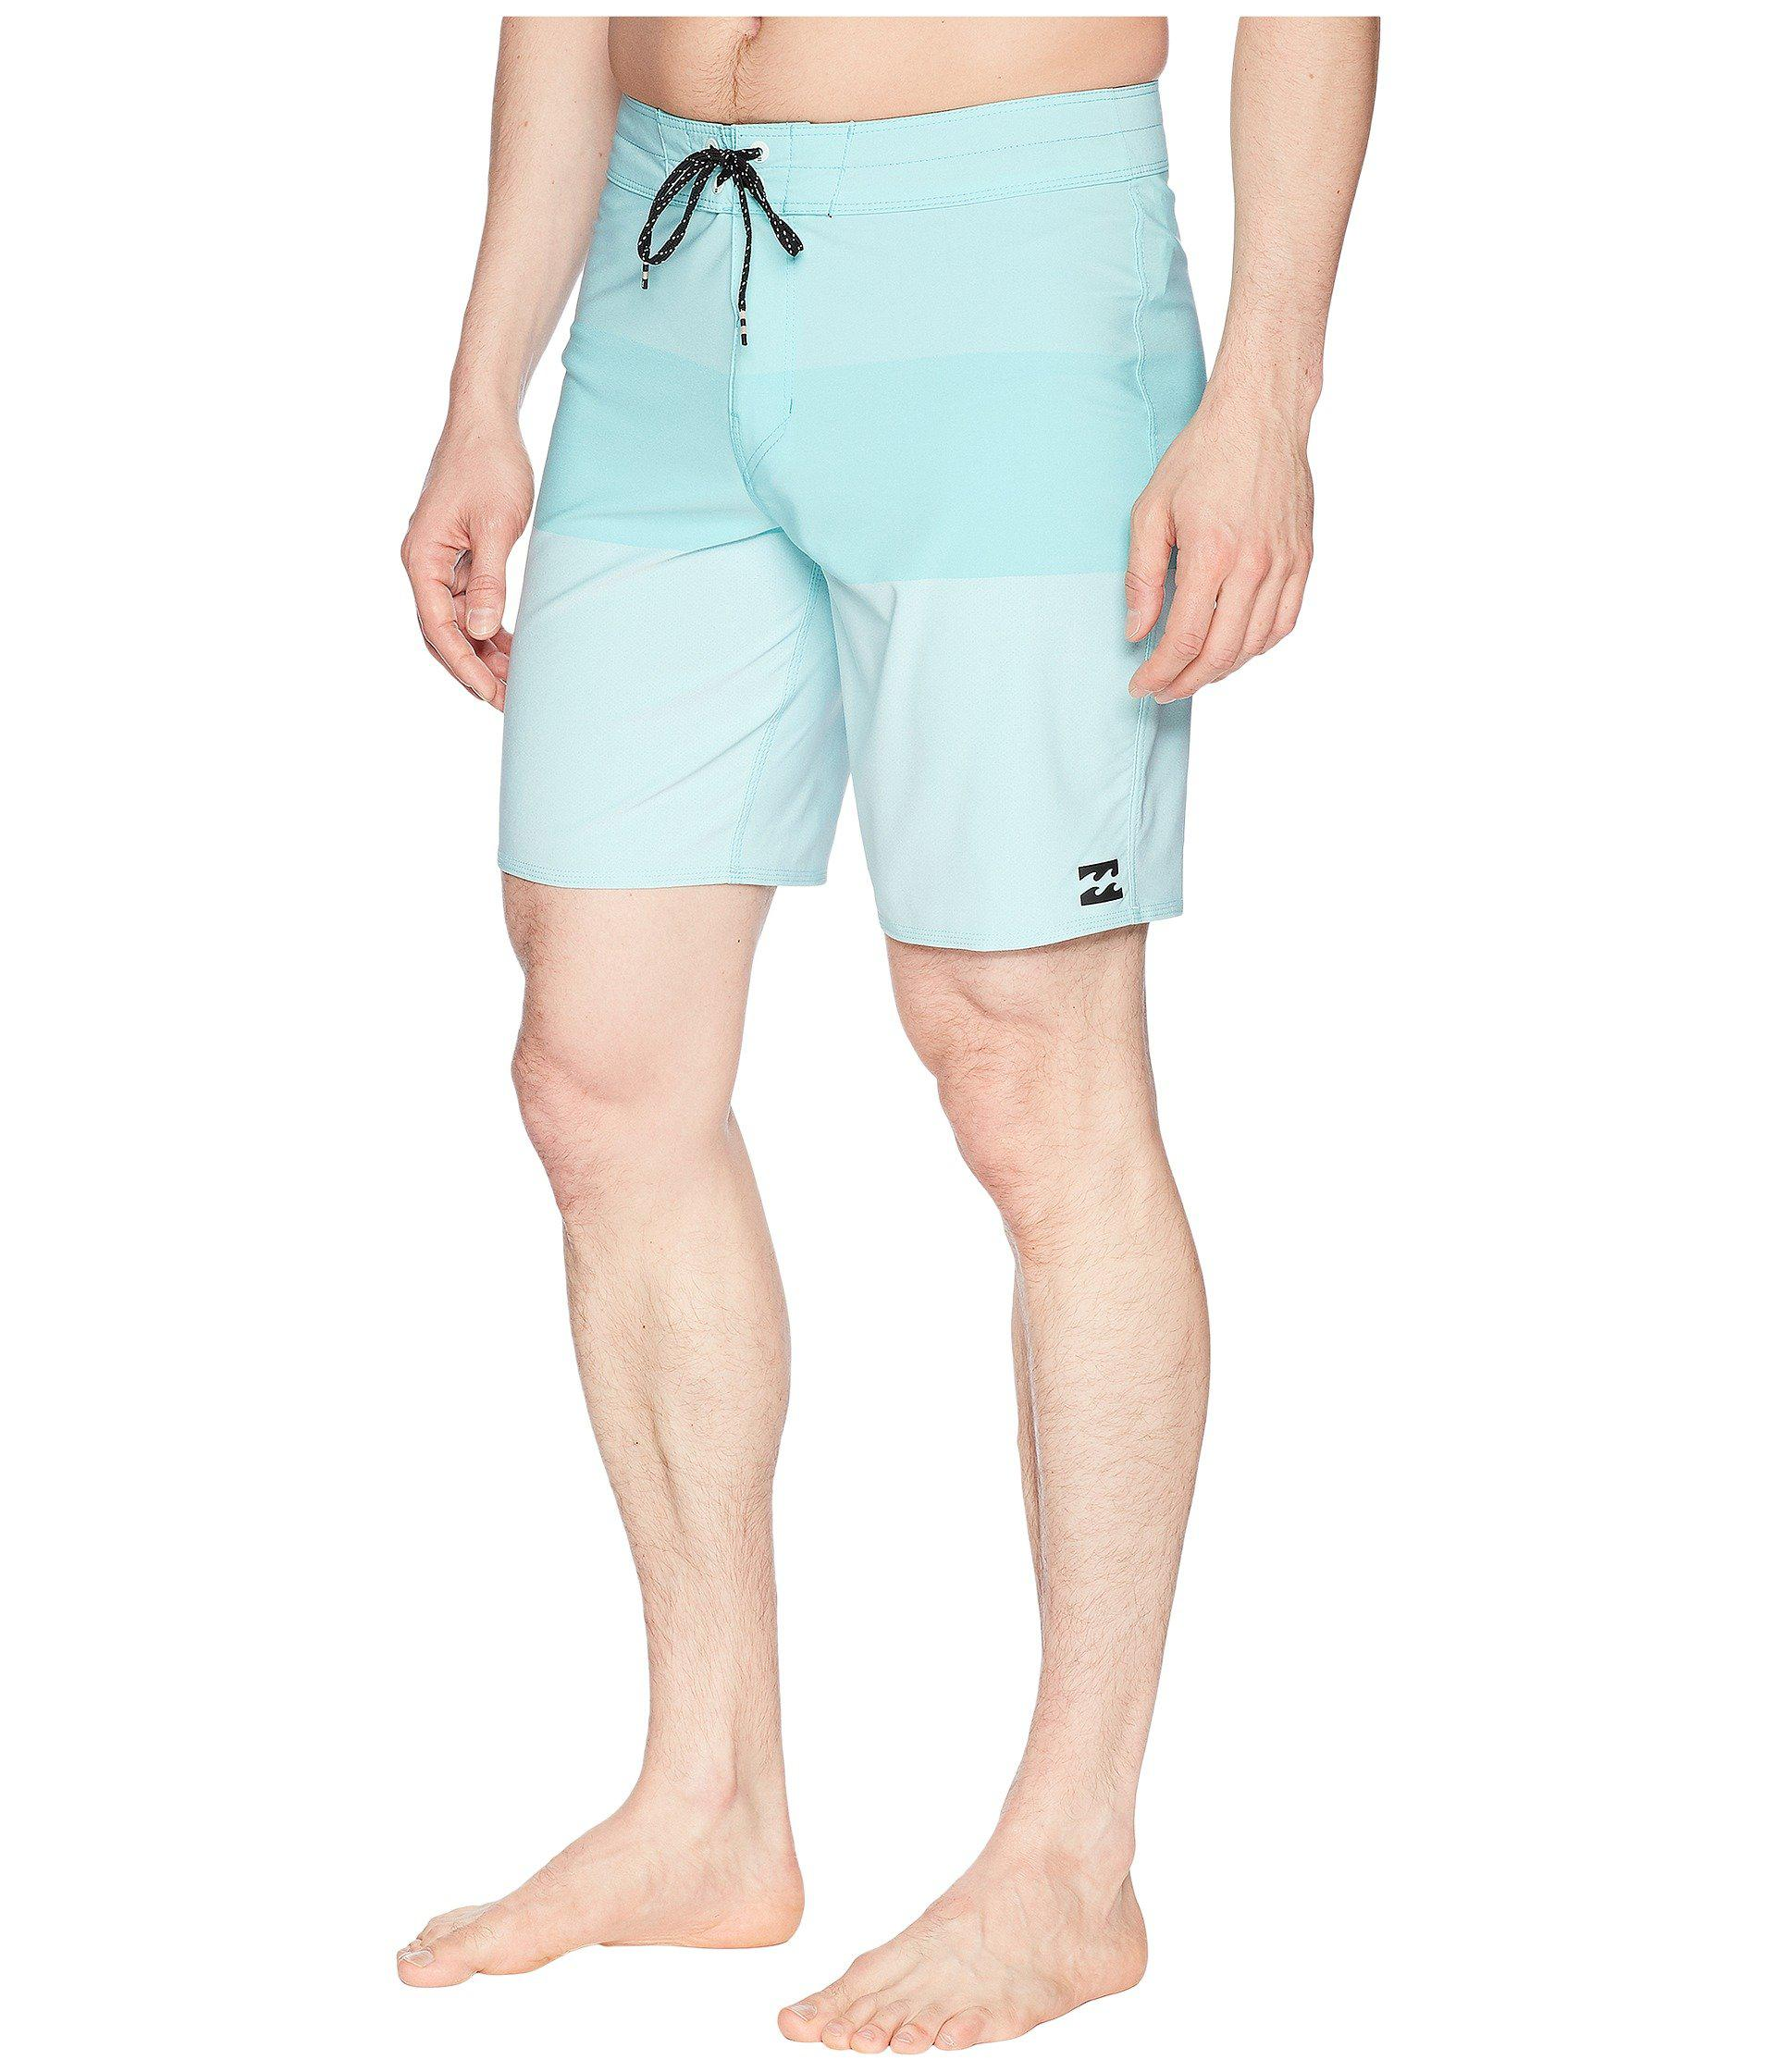 Lyst - Billabong Tribong Airlite Boardshorts in Blue for Men - Save 31% fa16d3679